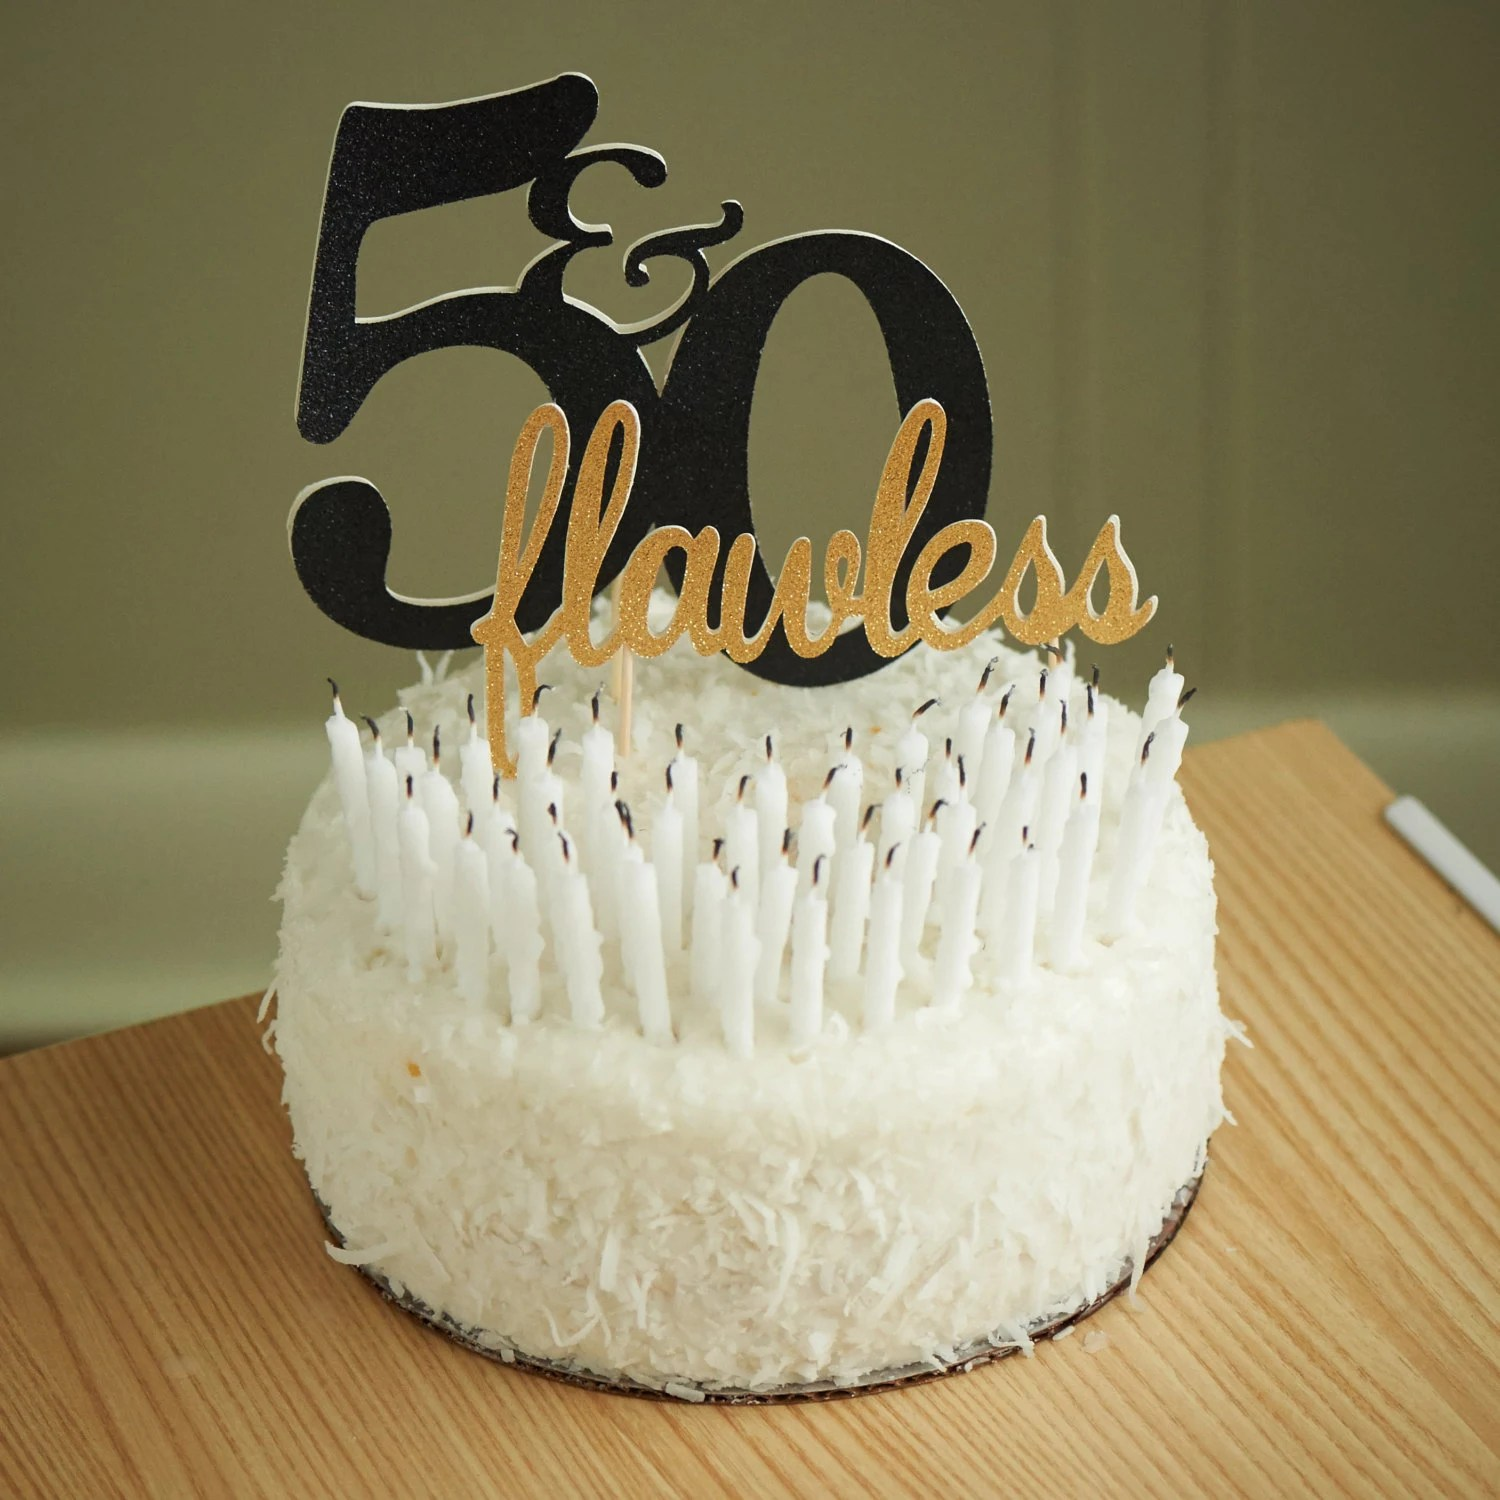 50th Birthday Cake Topper 50 Flawless Cake Topper Etsy